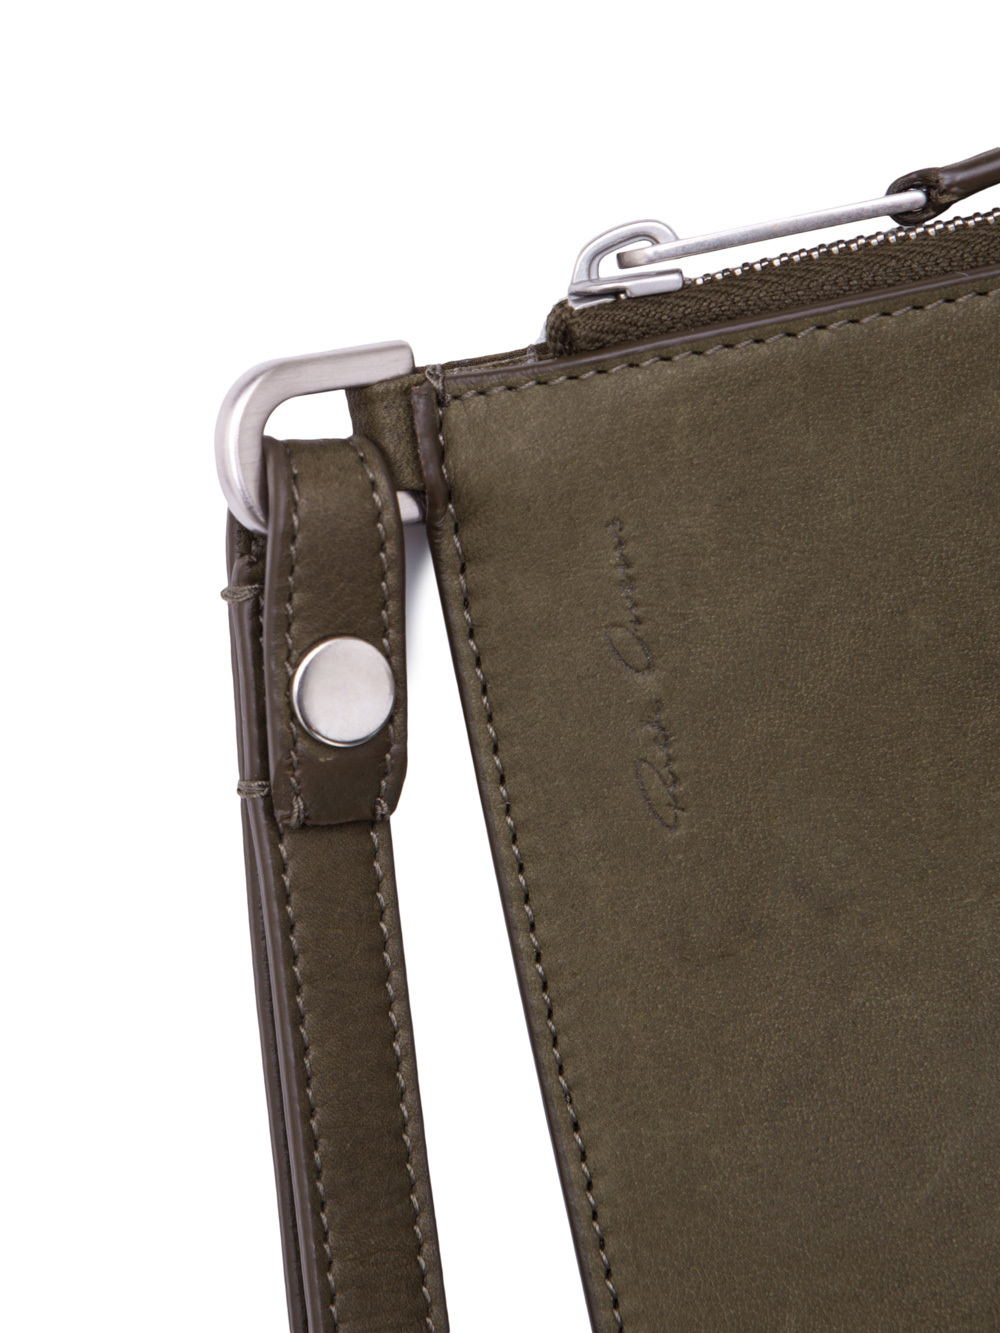 RICK OWENS MEDIUM ZIPPED POUCH IN DIRTY GREEN CALF LEATHER